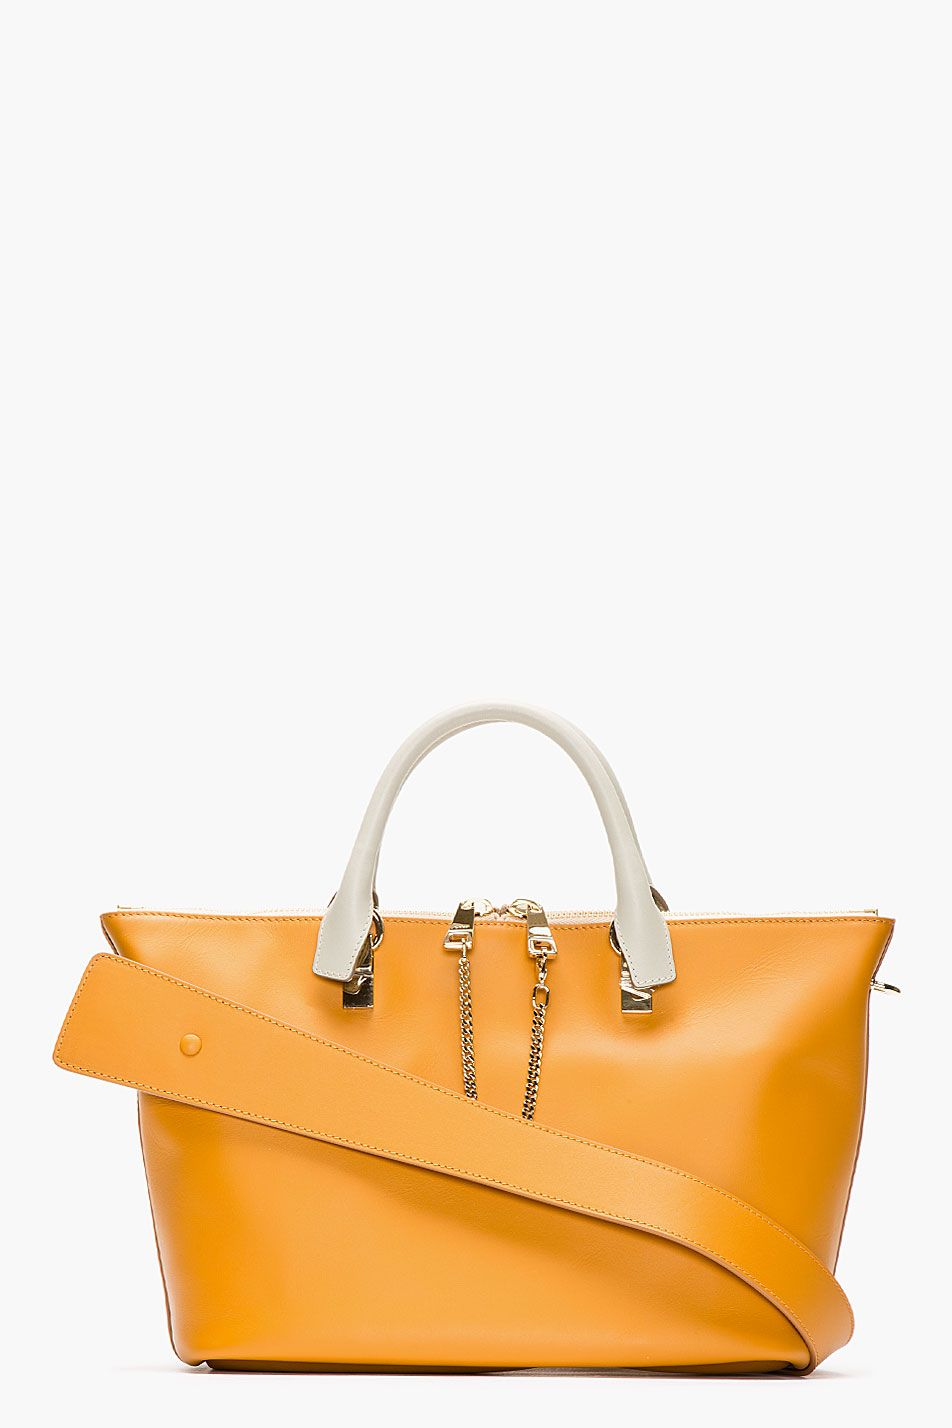 c2ad0bdd22bbb CHLOE Tan leather Baylee Small Tote   My Style   Bolsos, Carteras